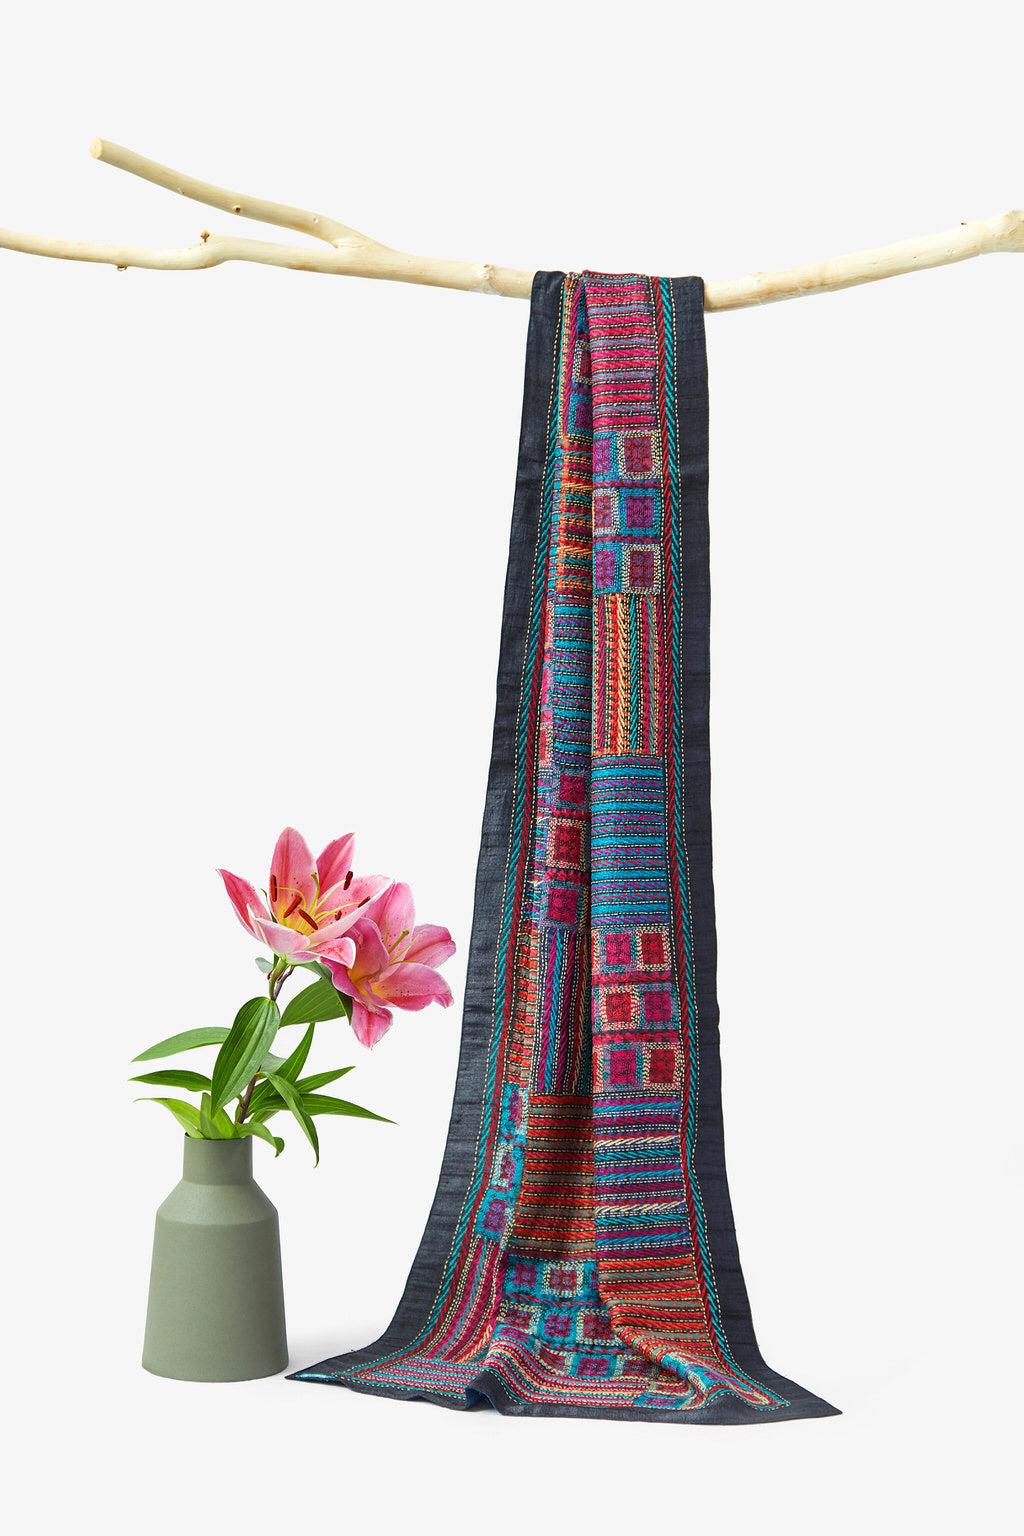 An Alchemy of Threads - Reversible - Multicolored Kantha Silk Shawl